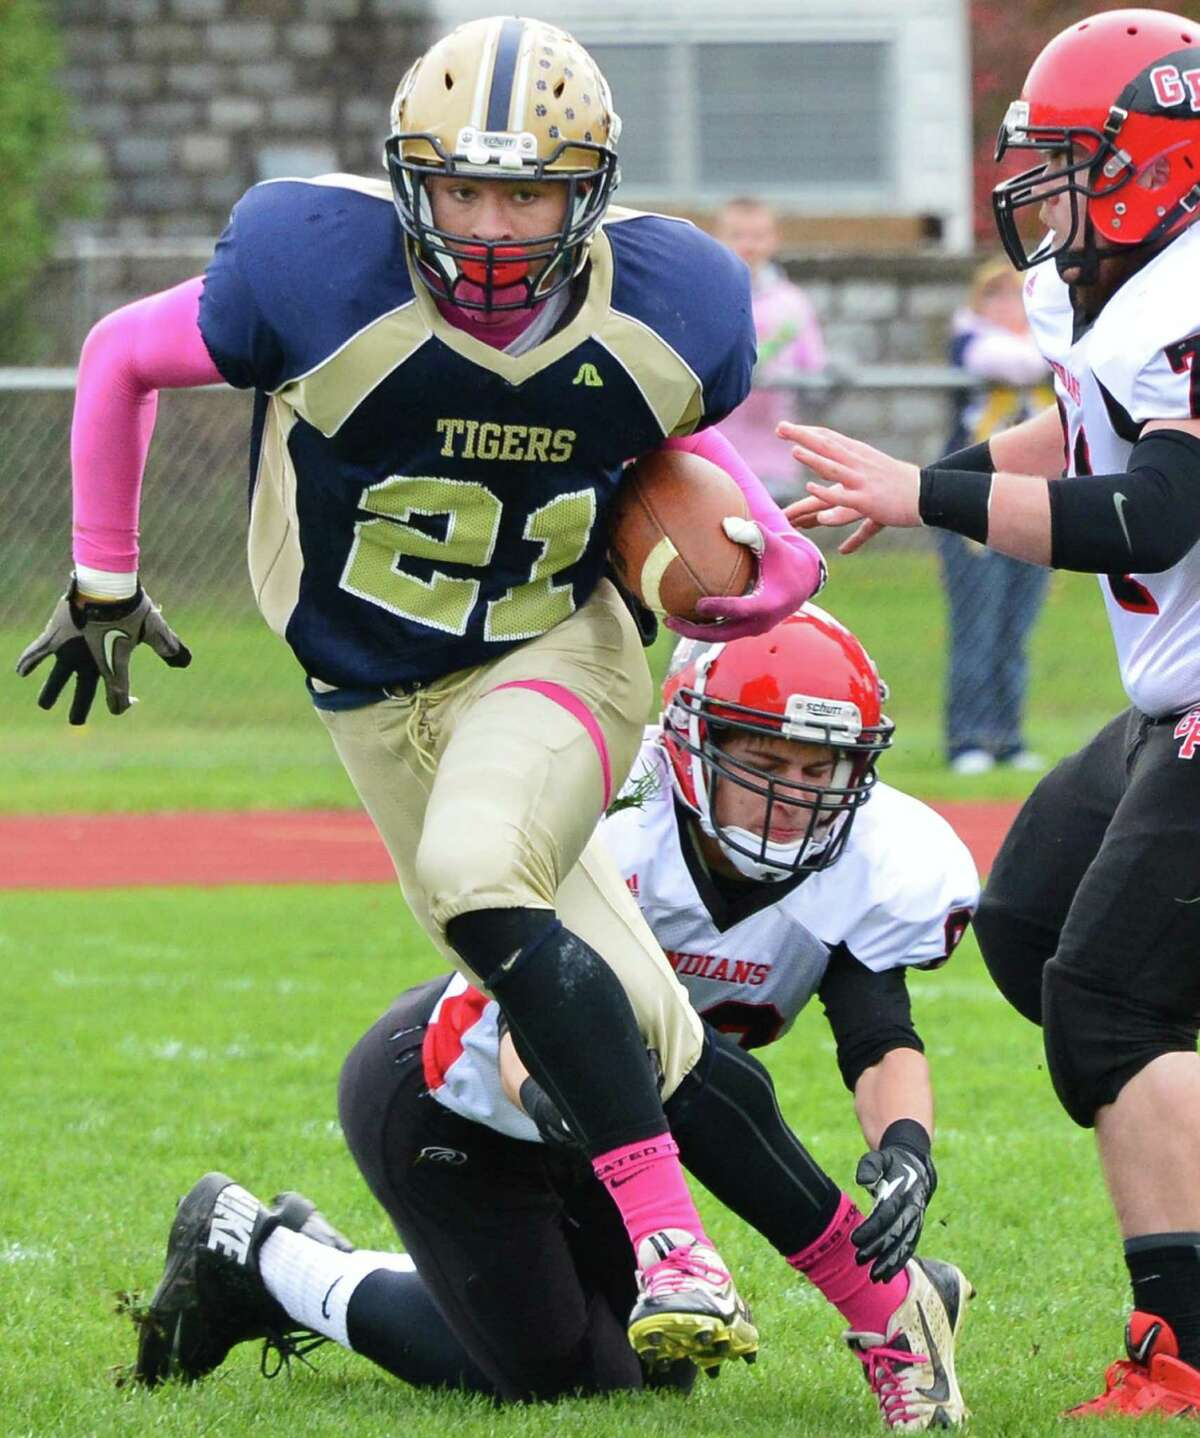 Cohoes' #21 Shelton Alston breaks away from Glens Falls' defenders during the Class B quarterfinal game Saturday Oct. 26, 2013, in Cohoes, NY. (John Carl D'Annibale / Times Union)